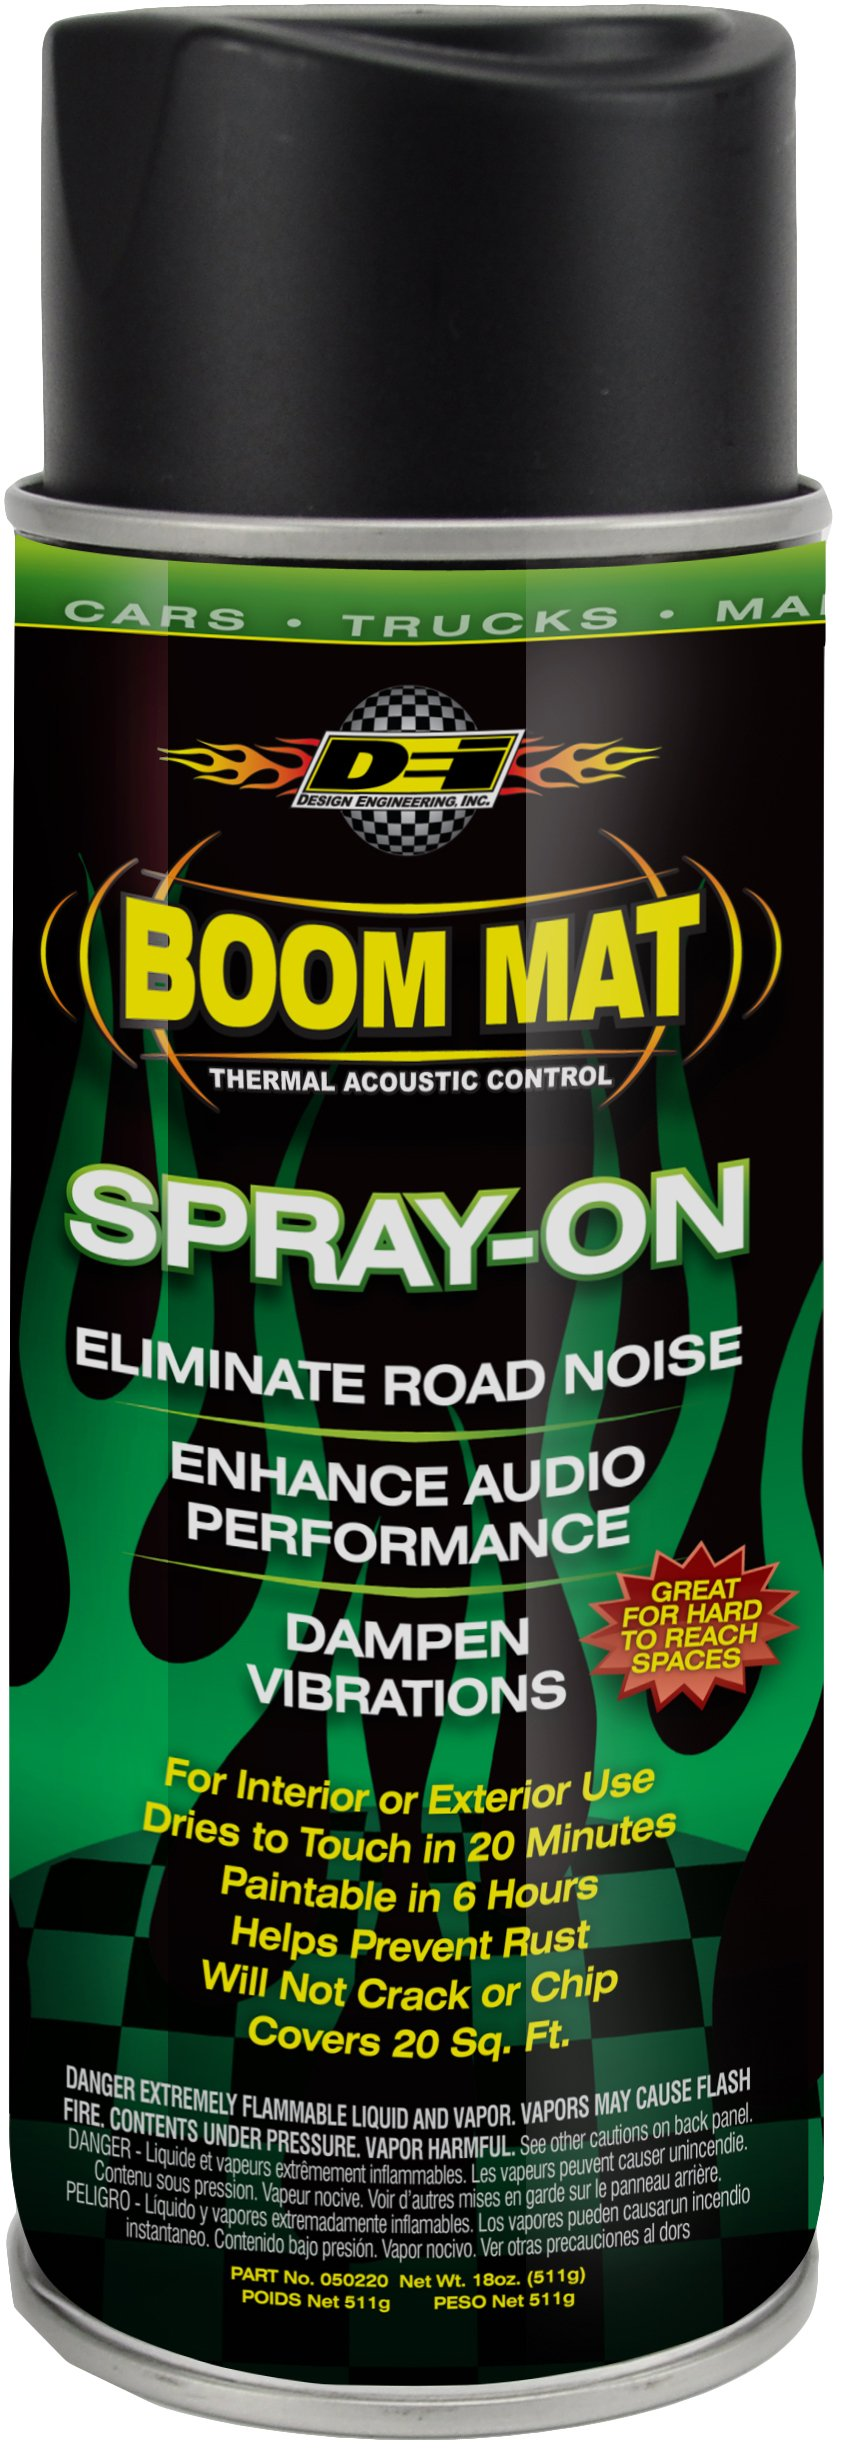 DEI 050220 Boom Mat Spray-on Sound Deadening to Reduce Unwanted Road Noise and Vibration